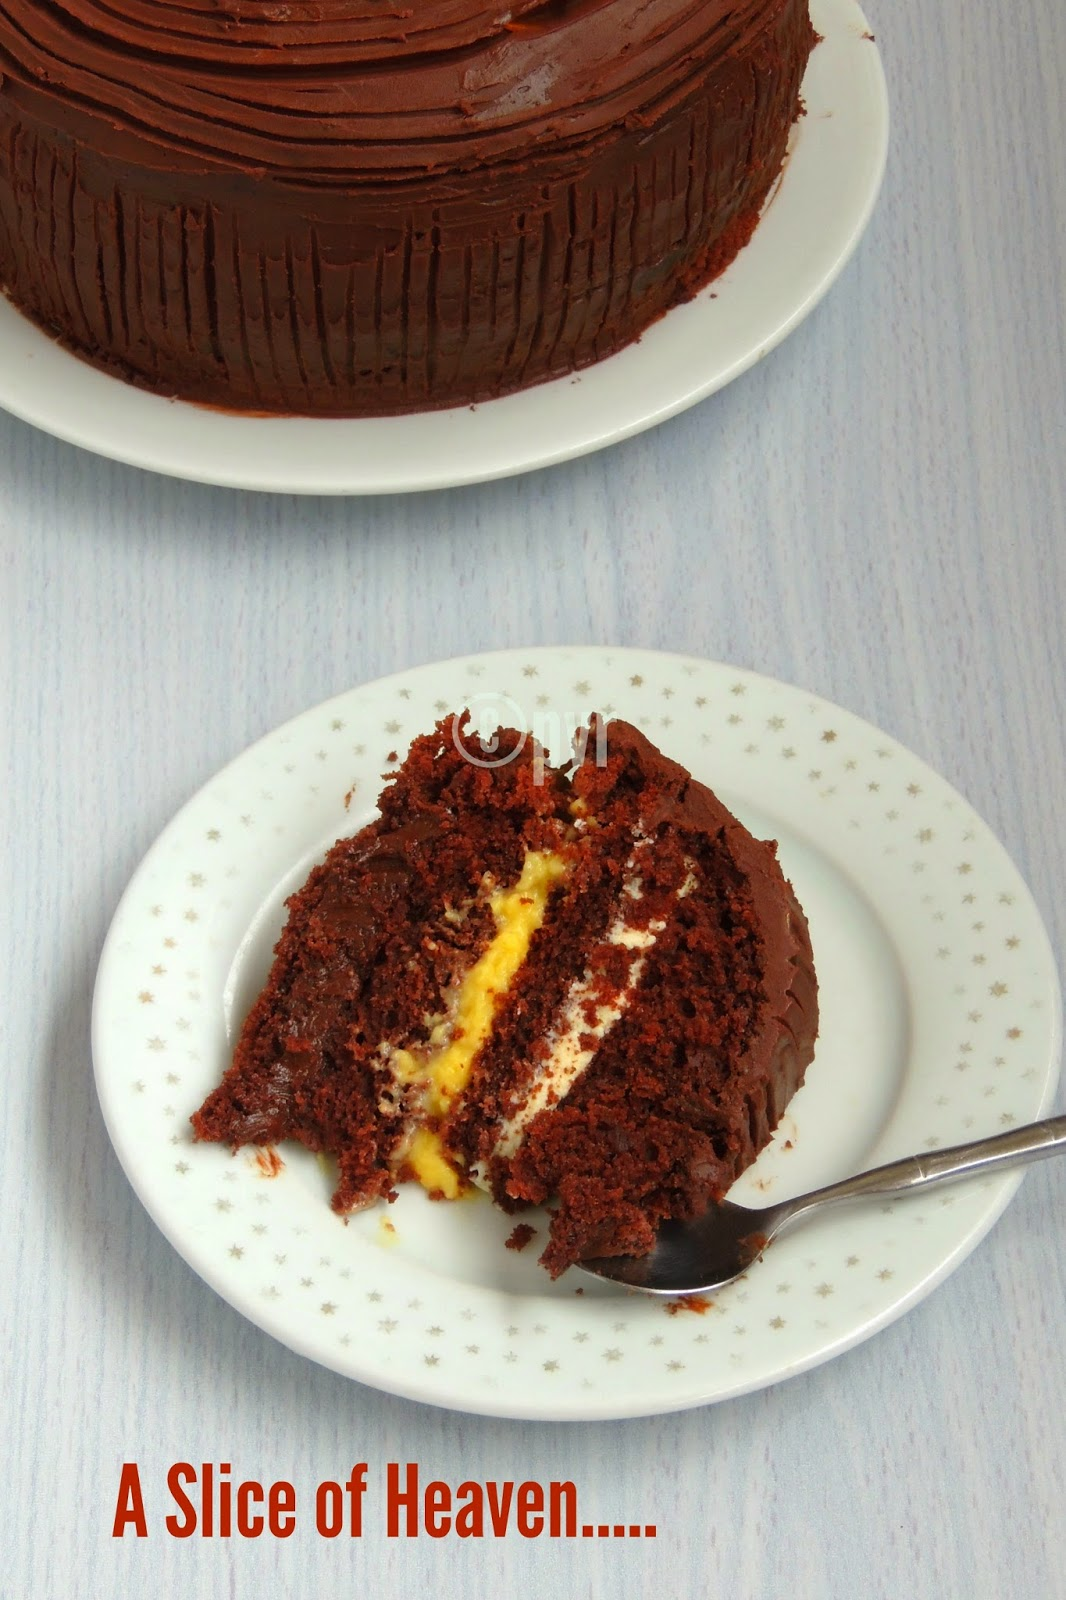 Chocolate cake with different eggless filling